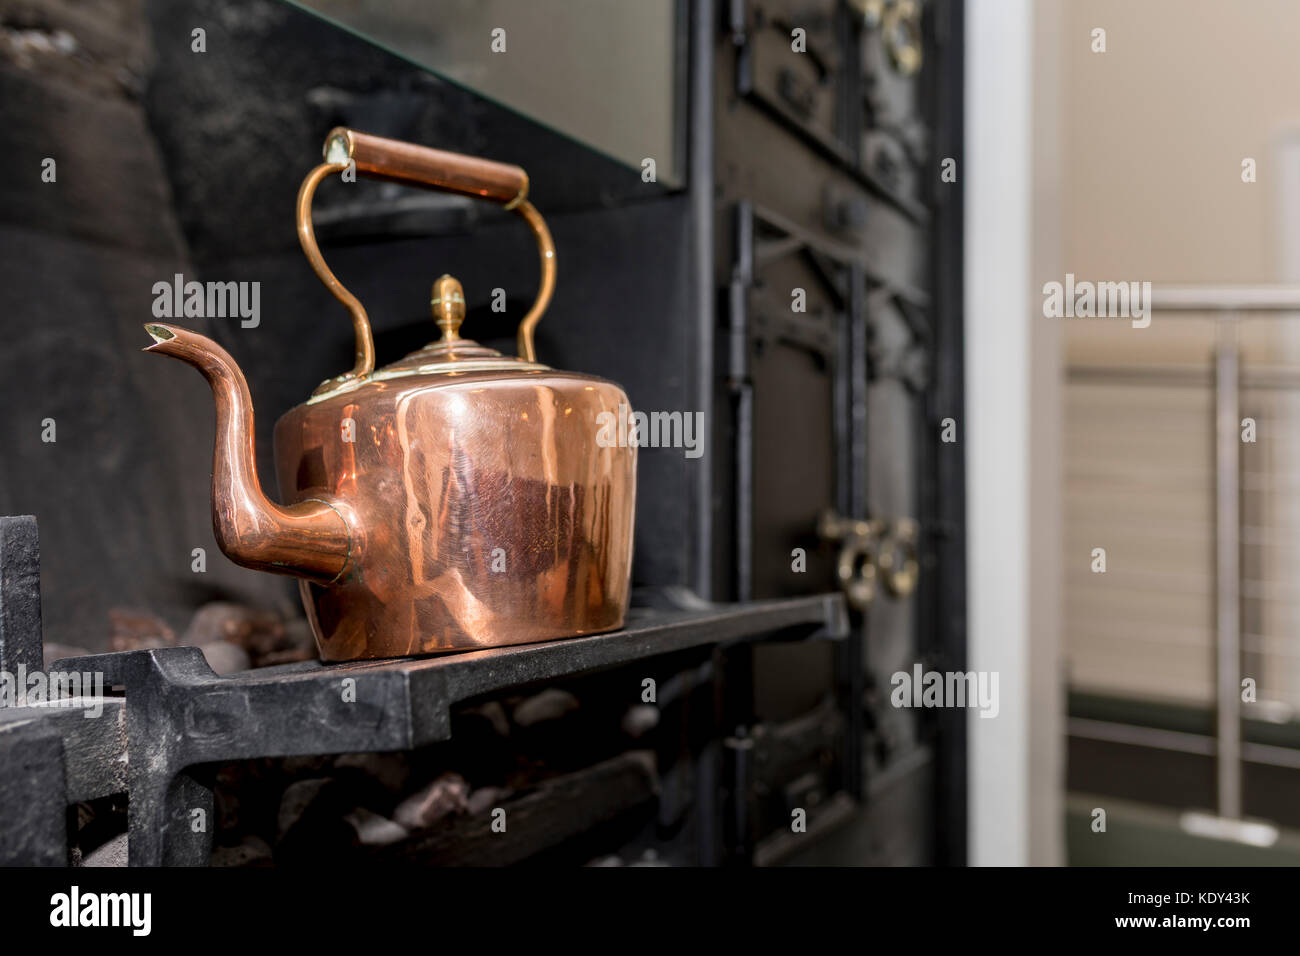 Vintage And Antique Copper Kettle On A Victorian Stove In A